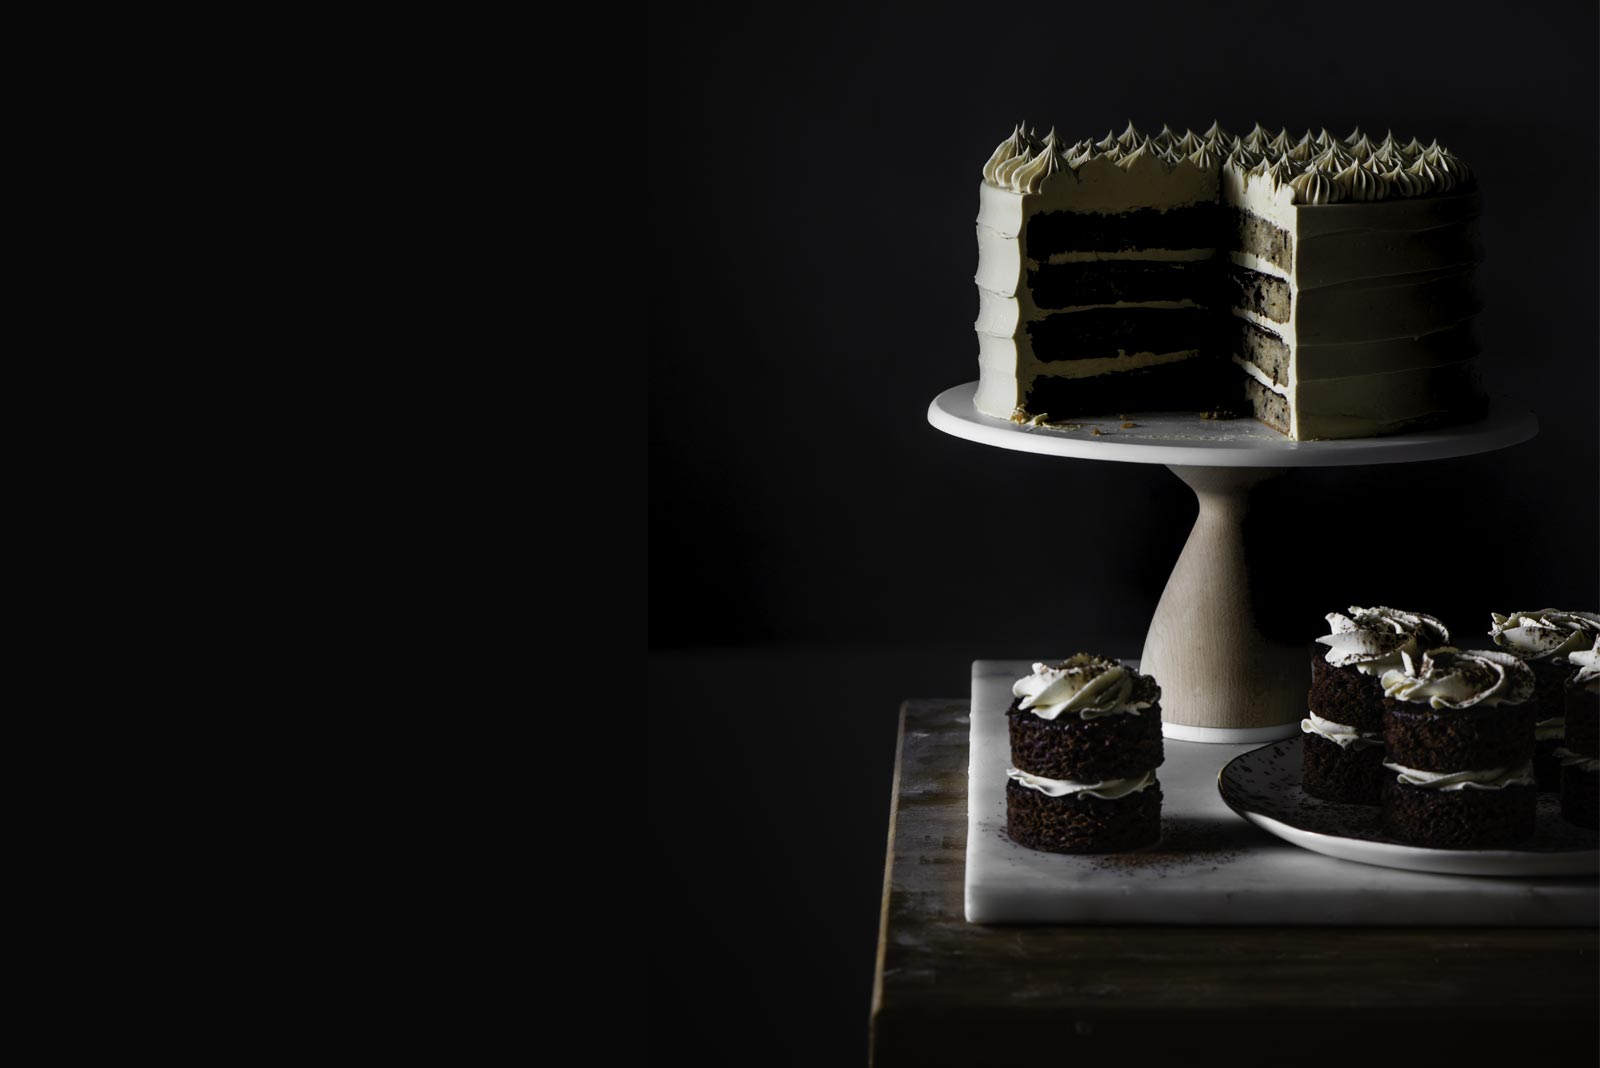 Layered banana cake on a cakes stand with devils food cupcakes surrounding it in a dark room.